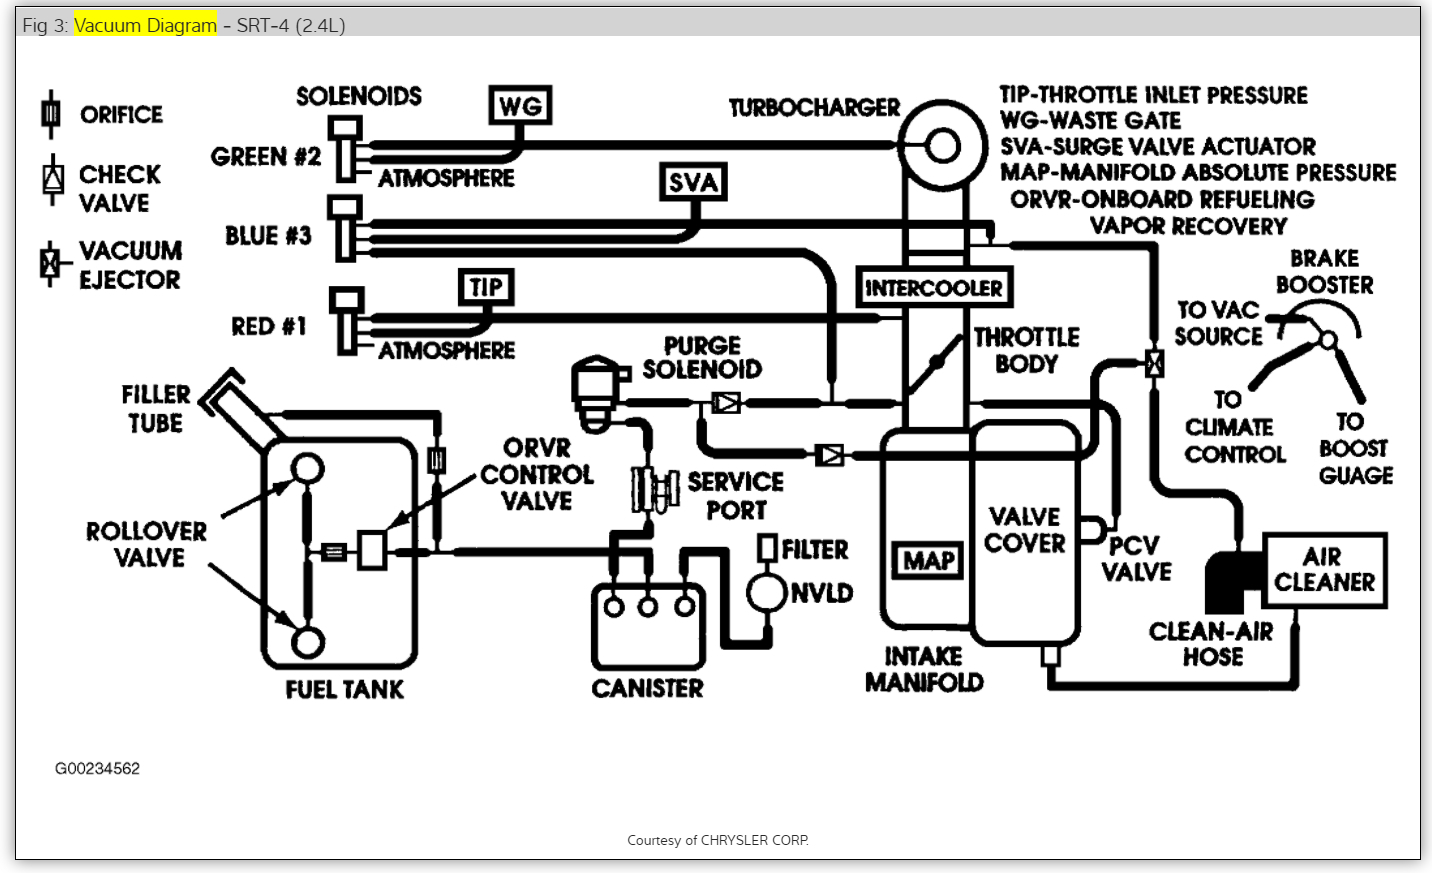 [WQZT_9871]  Dodge Vacuum Line Diagram Additionally 1998 Dodge Neon Vacuum Line dodge  318 carburetor diagram d150 dodge dodge 318 vacuum diagram -  pump.123vielgeld.de | 04 Neon Wiring Diagram |  | Wires